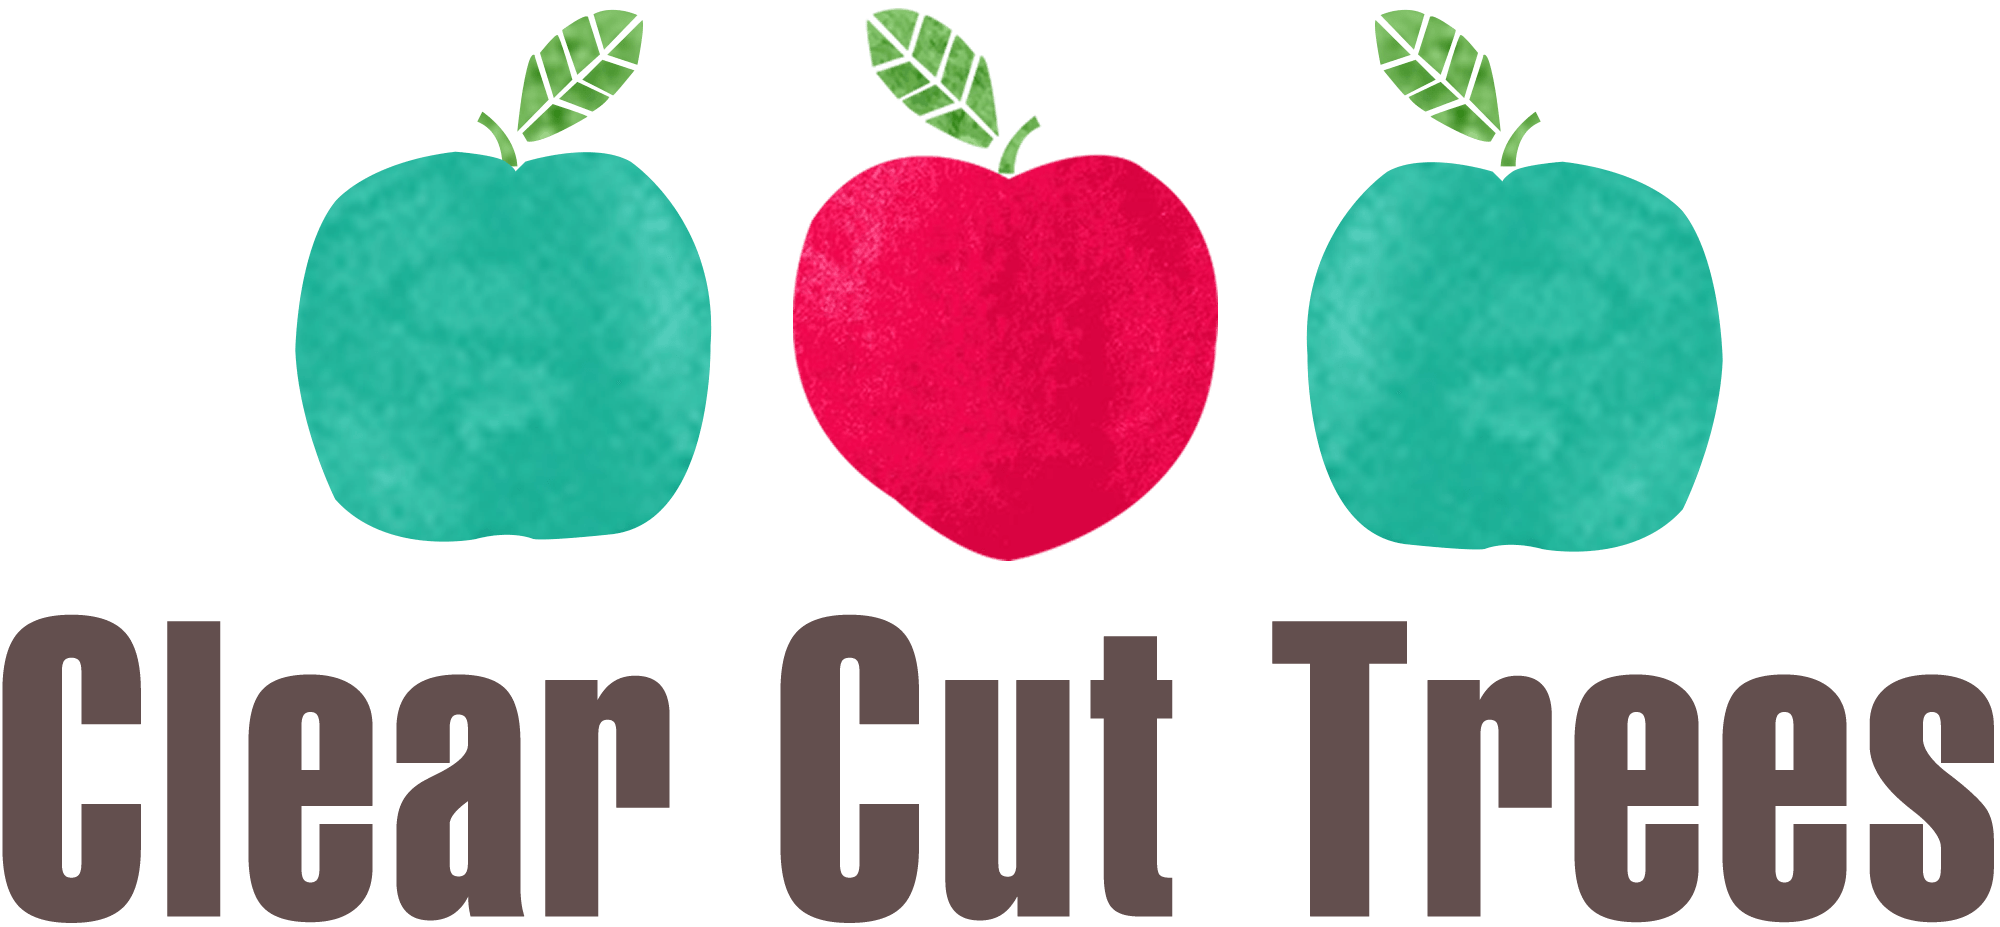 Clear Cut Trees logo